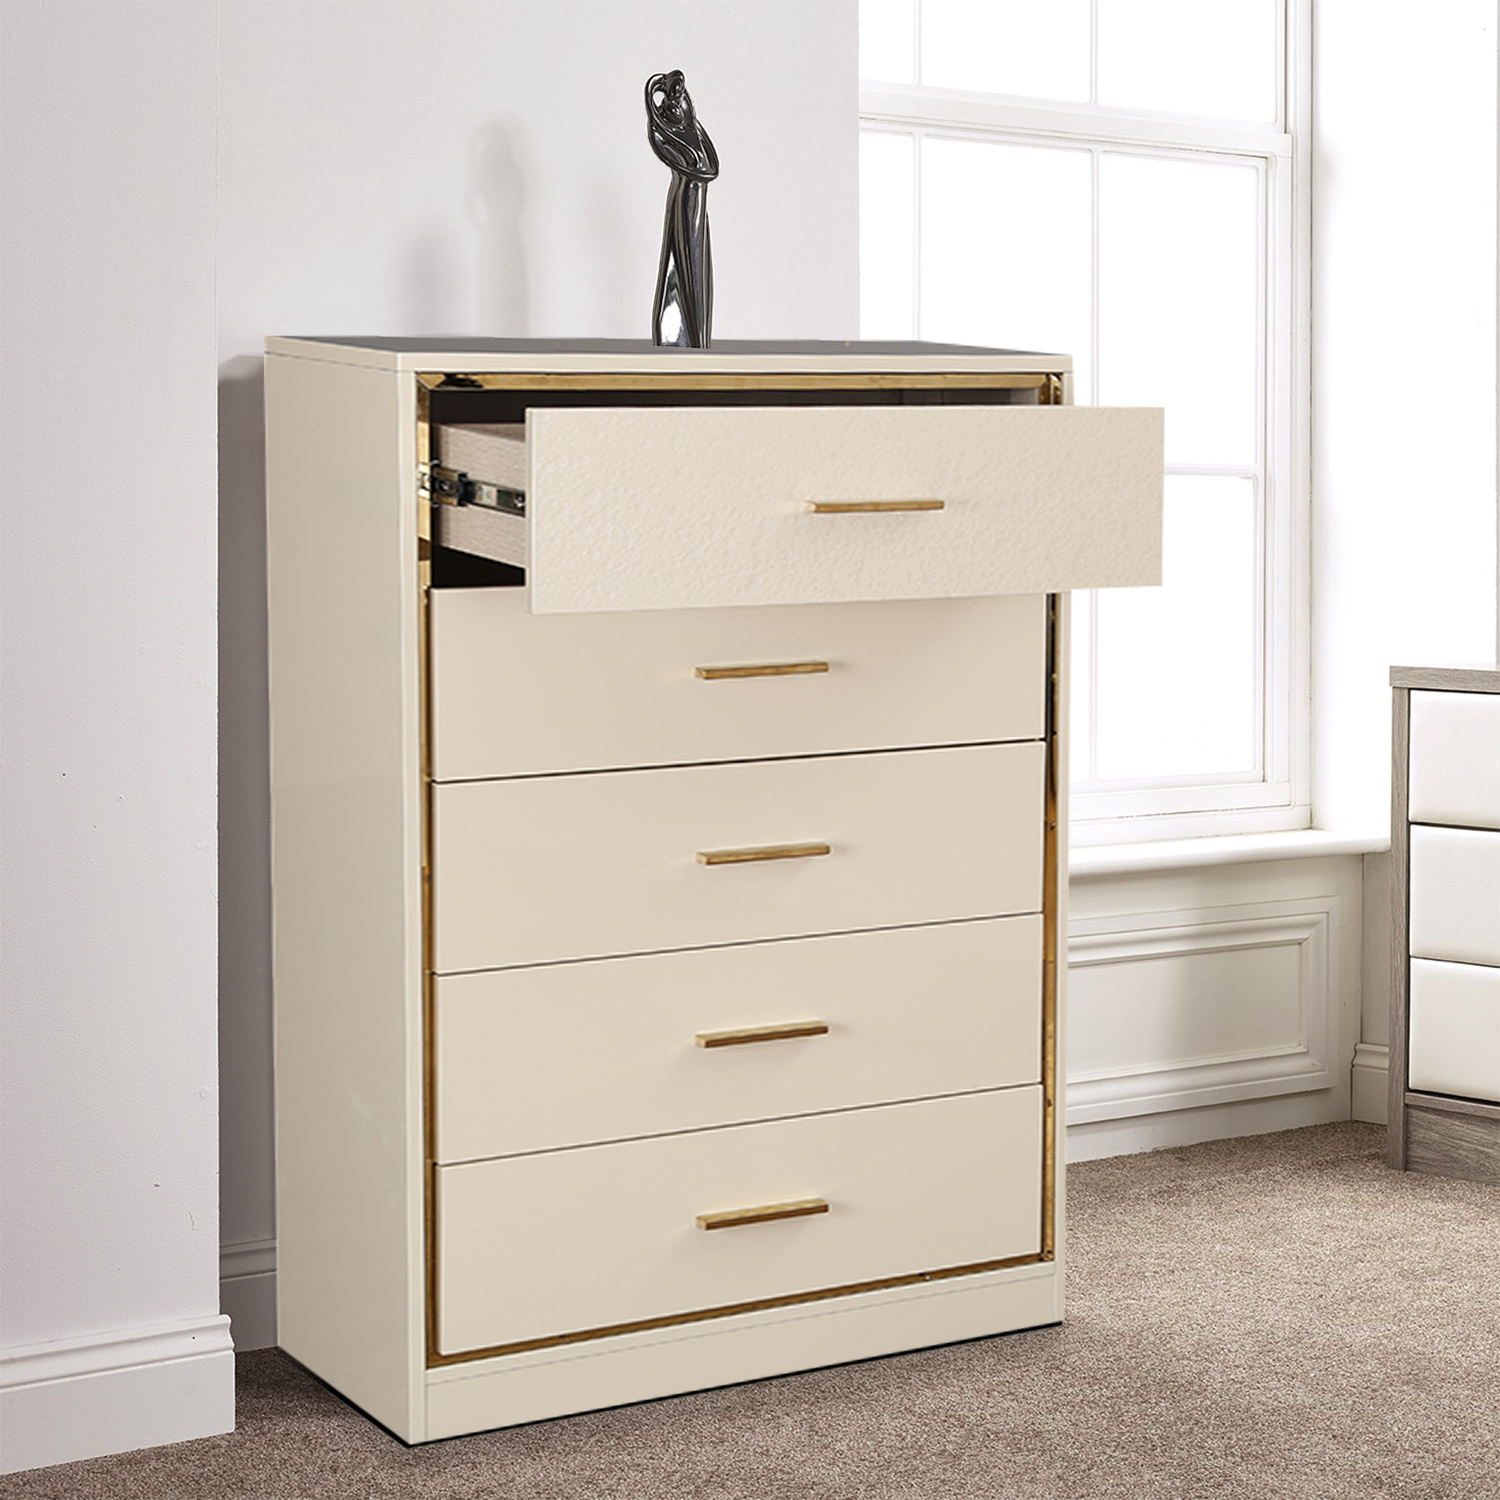 Stellar Engineered Wood Chest of Darwer in High Gloss White Colour by HomeTown